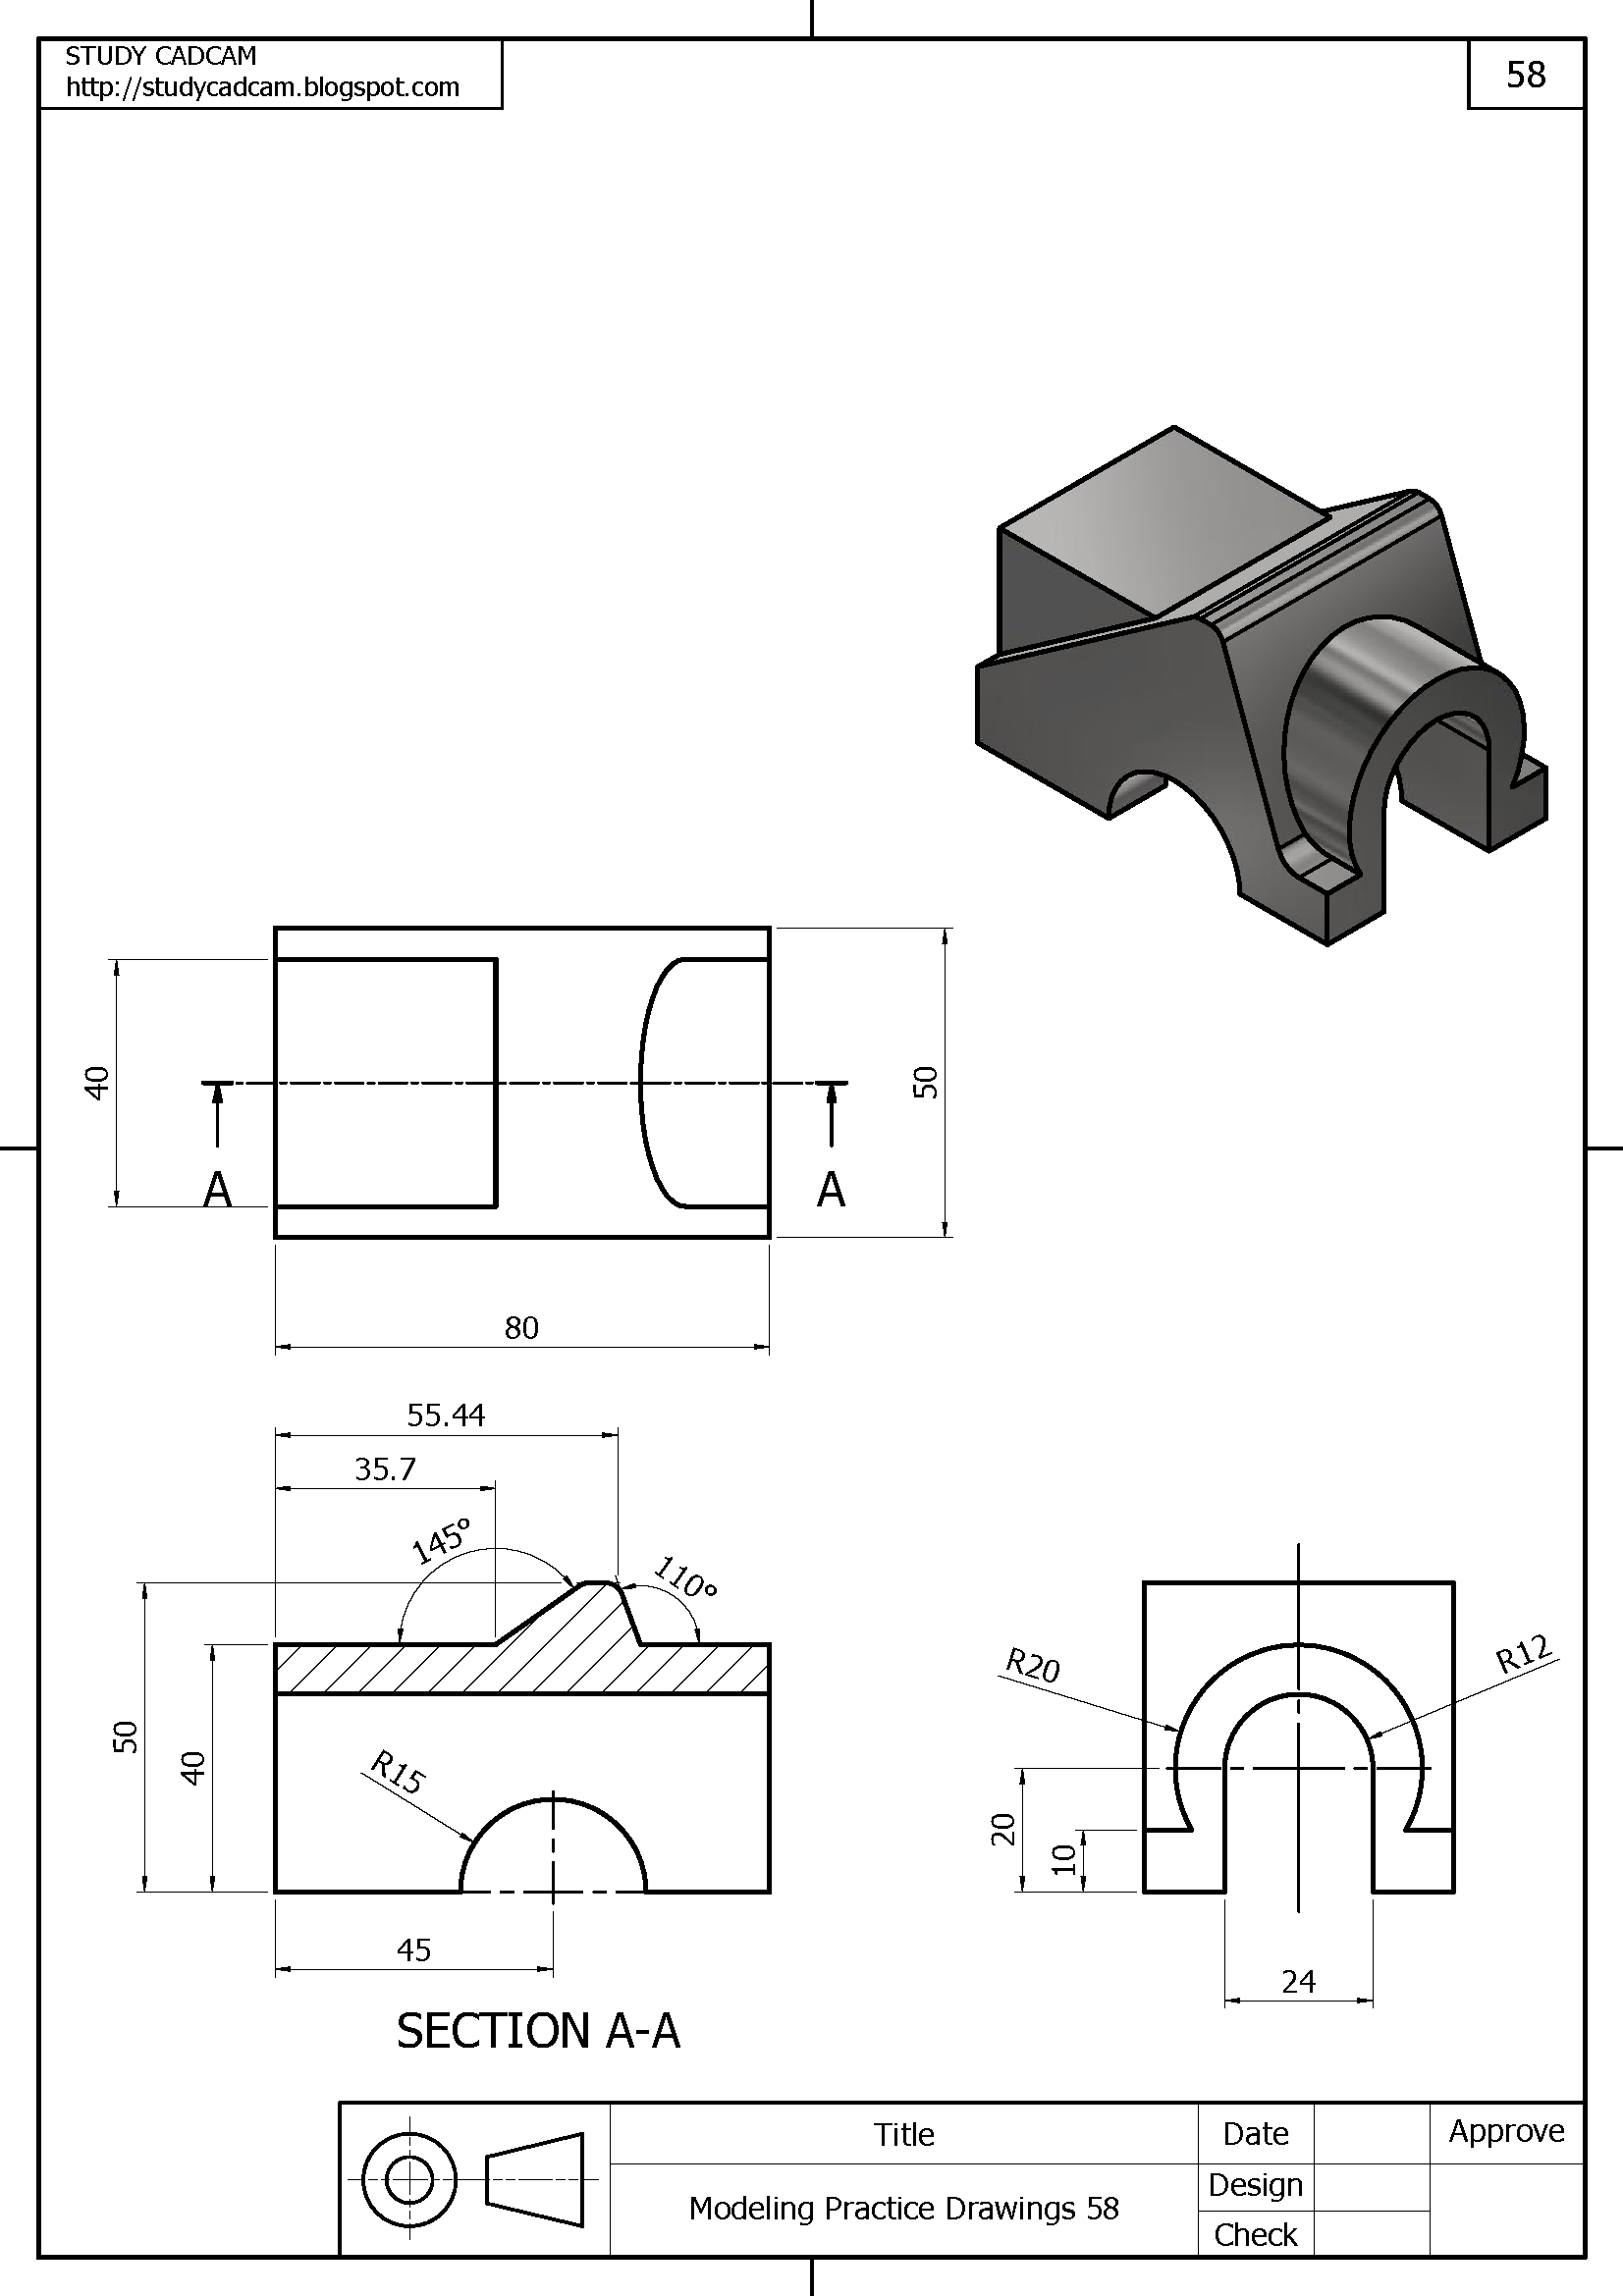 Pin by Erkan Kantar on Autocad   Orthographic drawing, Cad